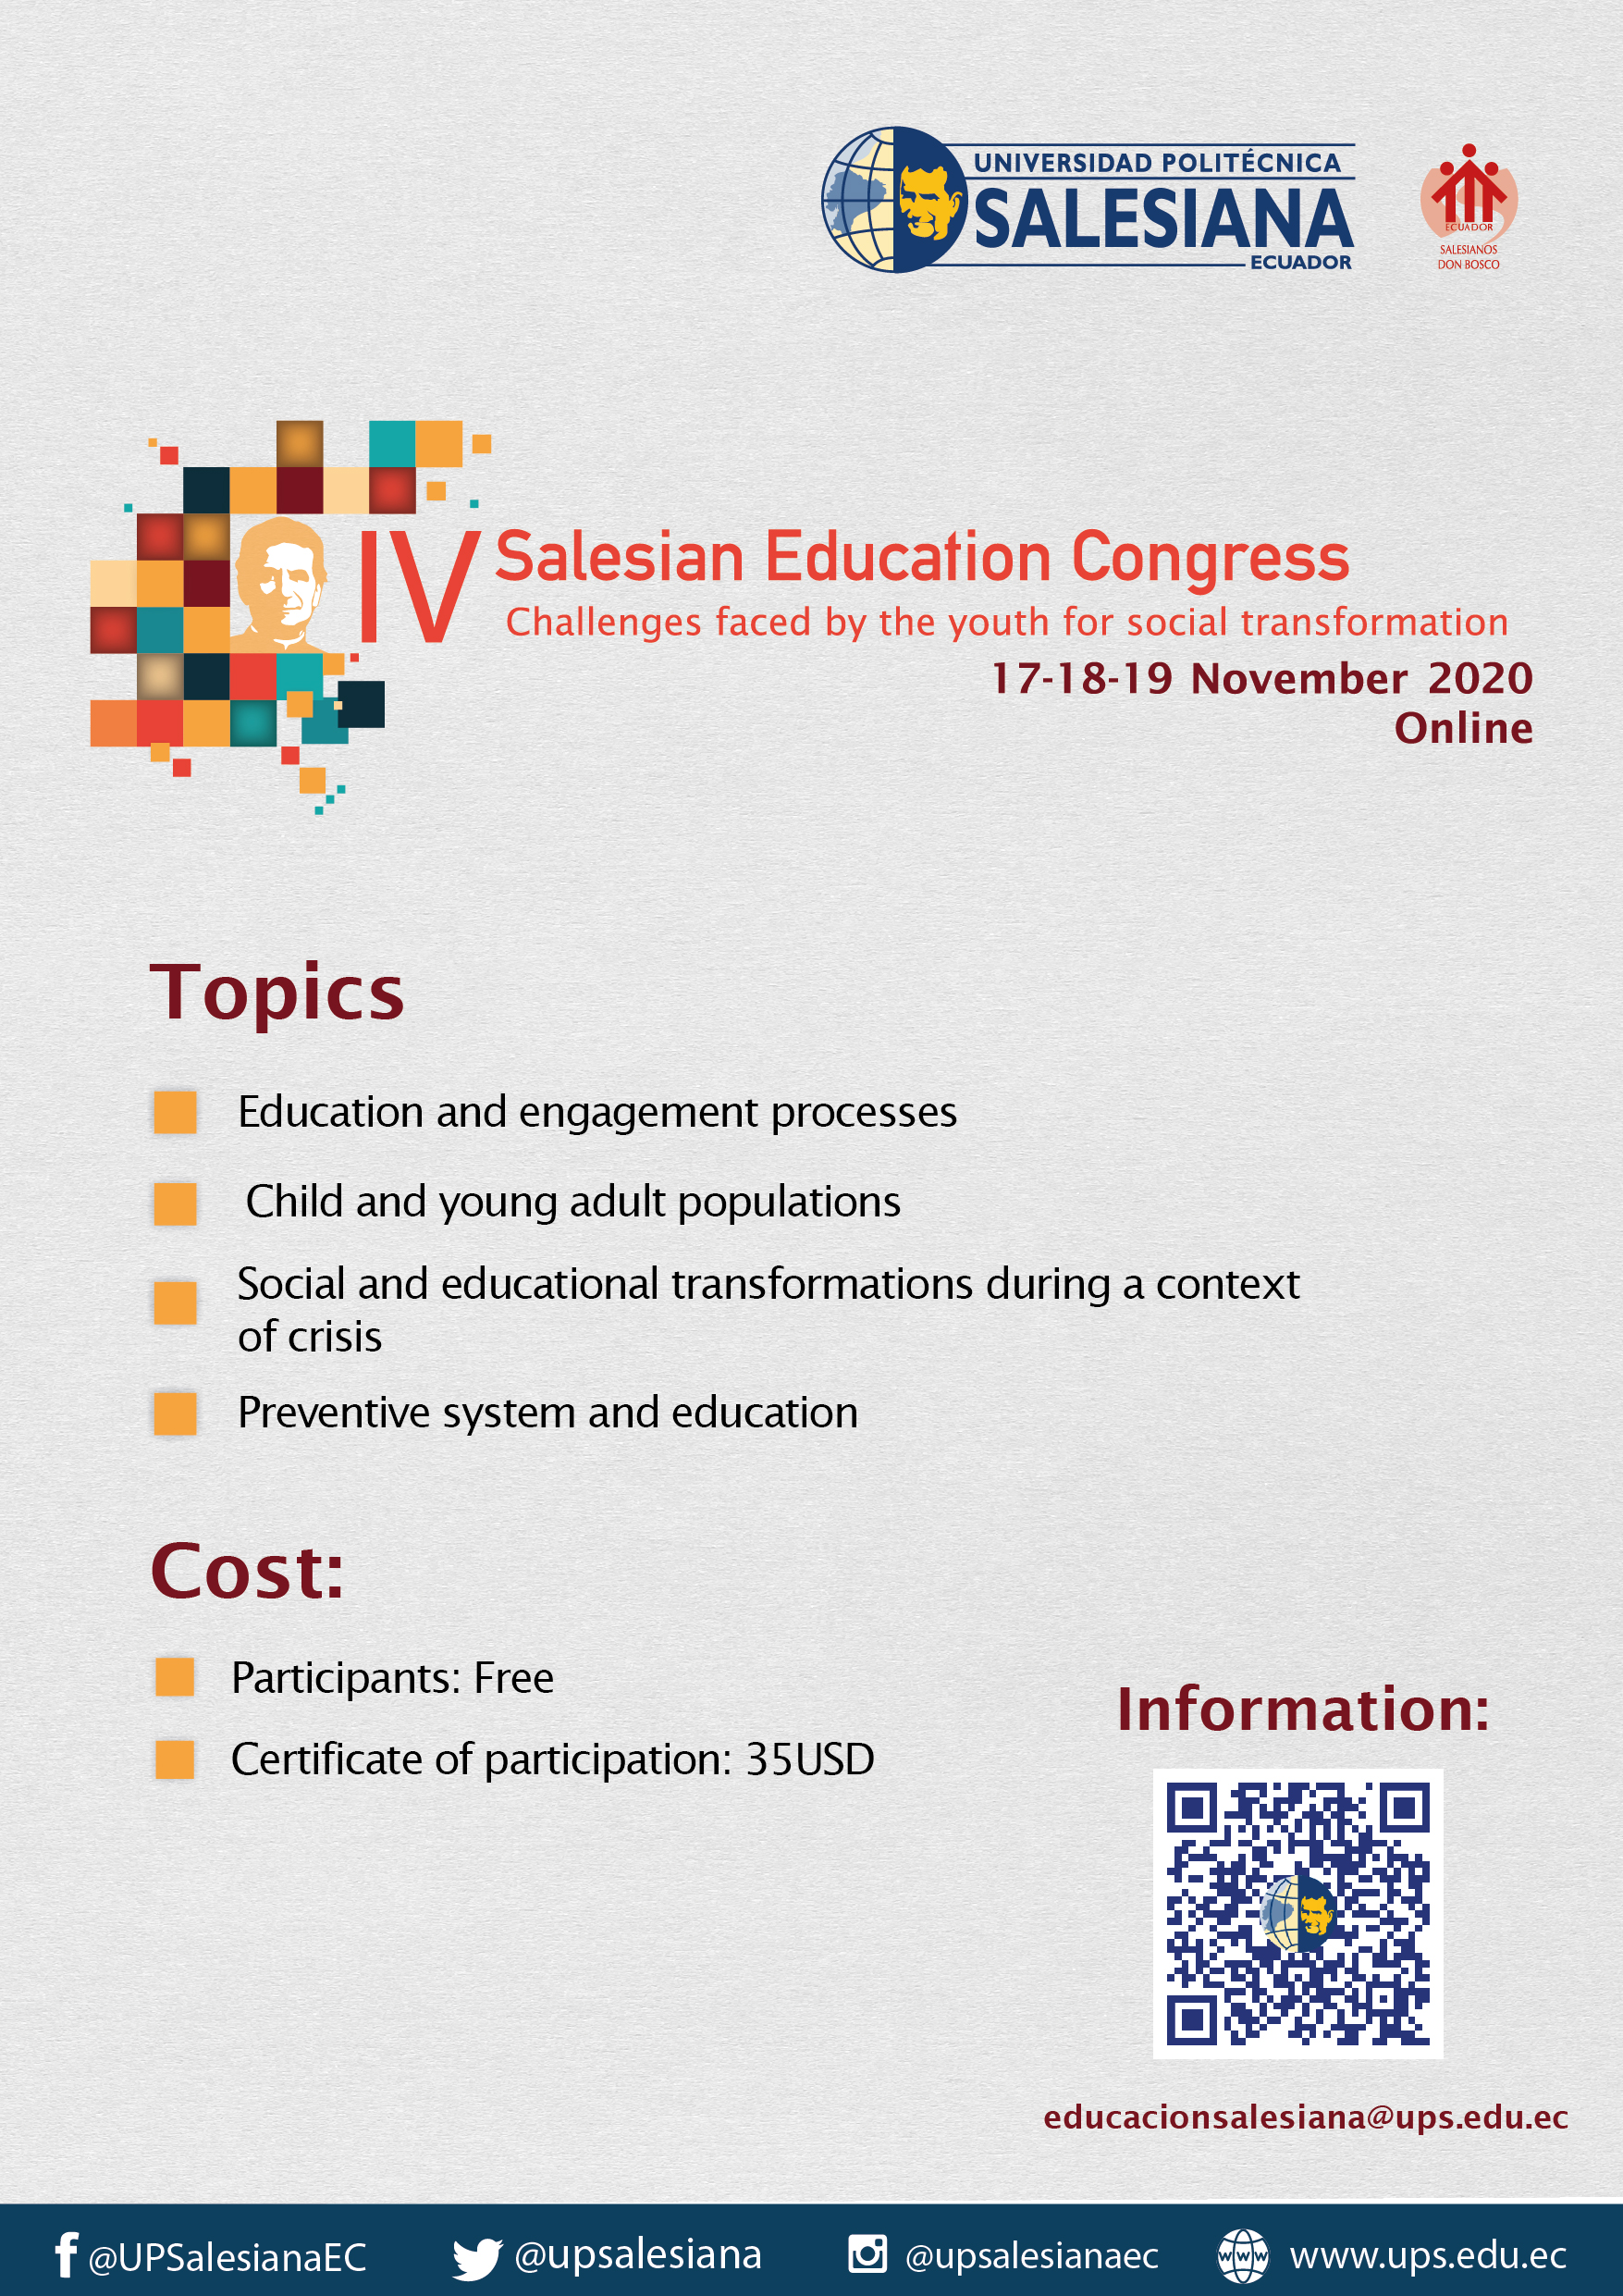 IV Salesian Education Congress hosted by the Salesian Polythecnic University of Ecuador